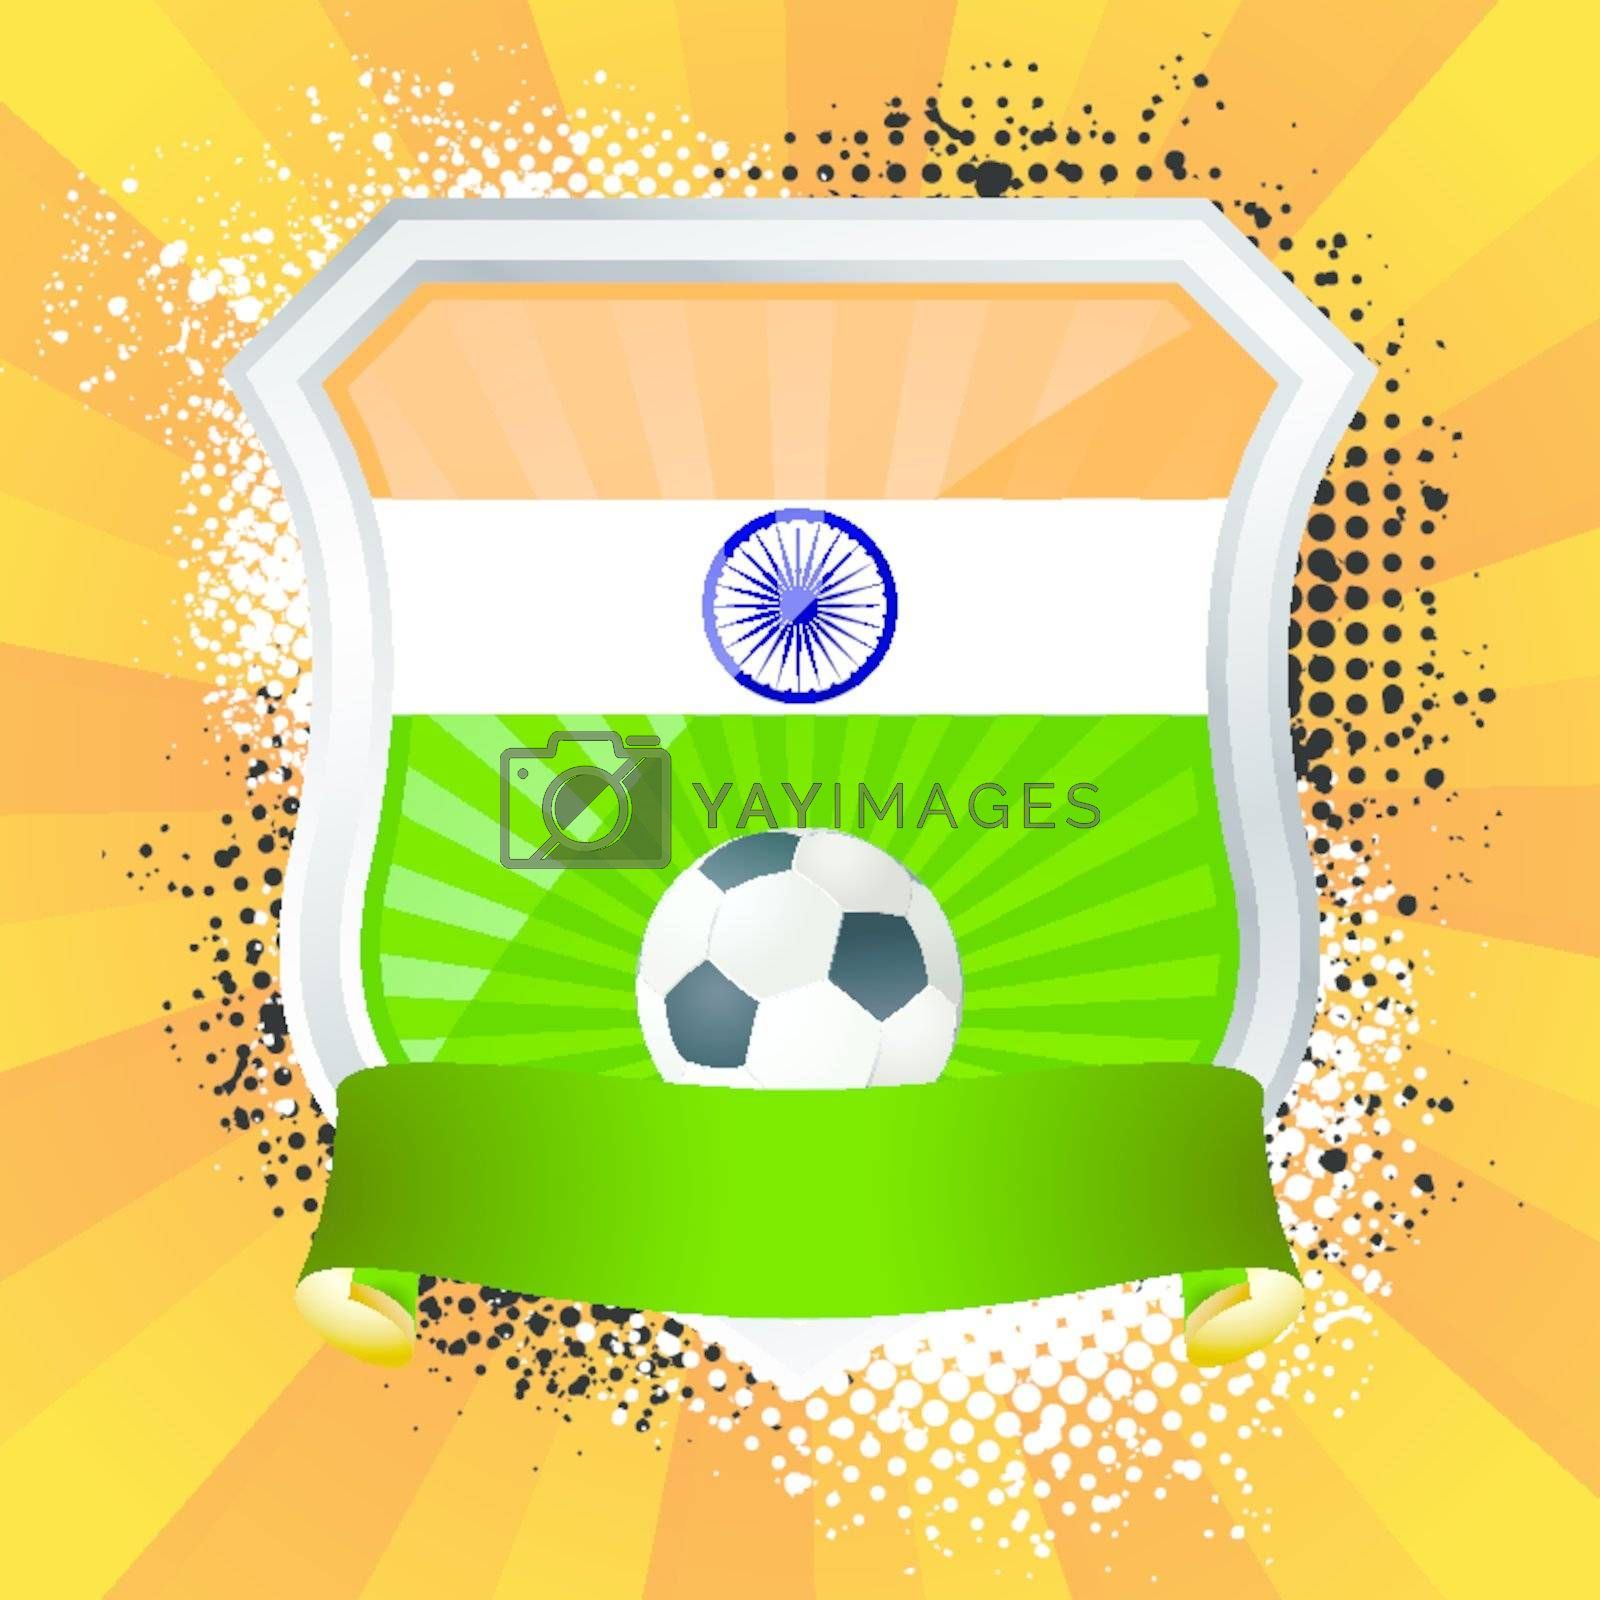 Royalty free image of Shield with flag of  India by Petrov_Vladimir